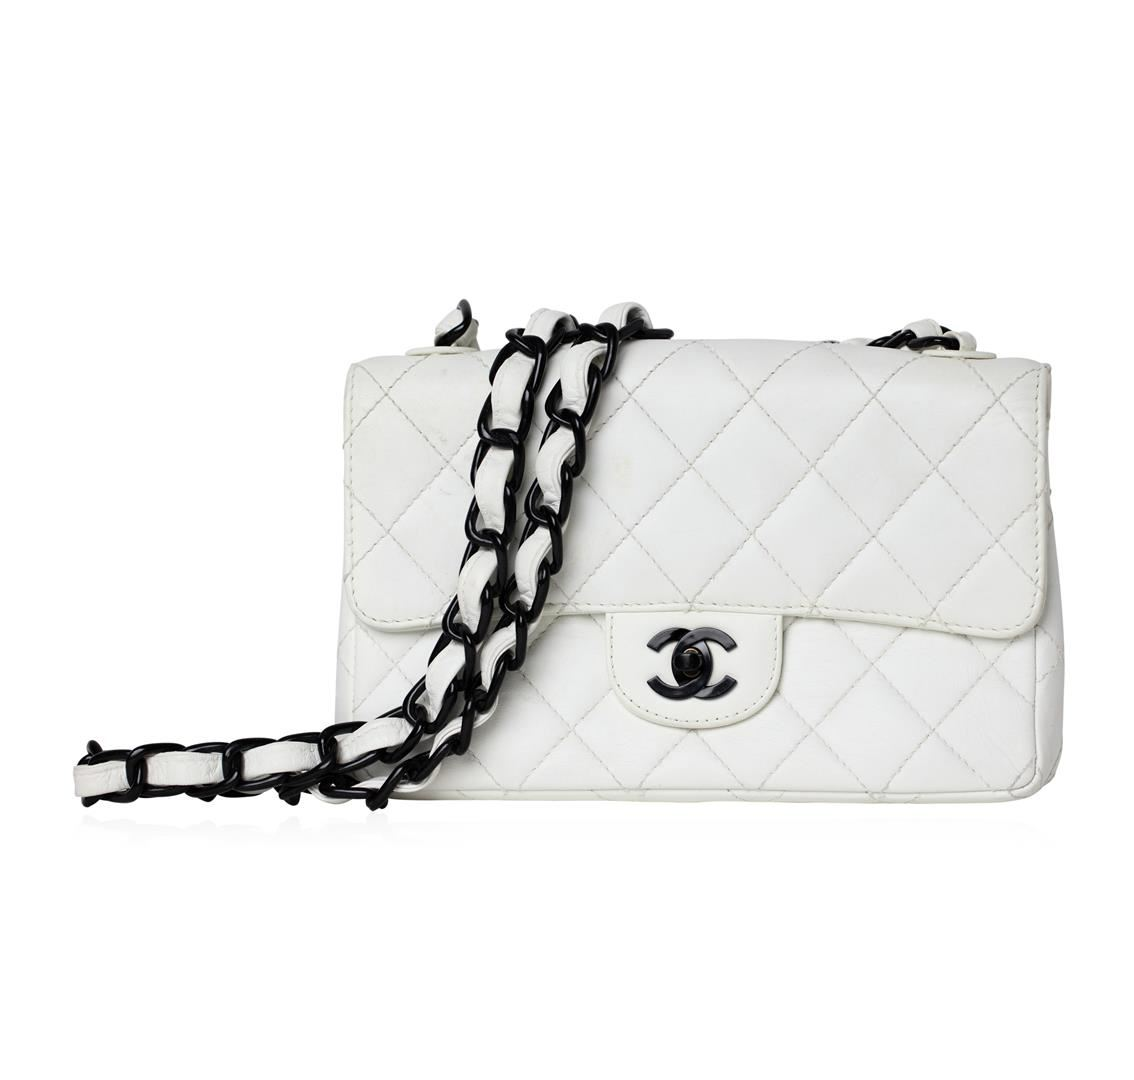 b0b1422f605989 Image 1 : Chanel White Single Flap Bag with Black Hardware ...